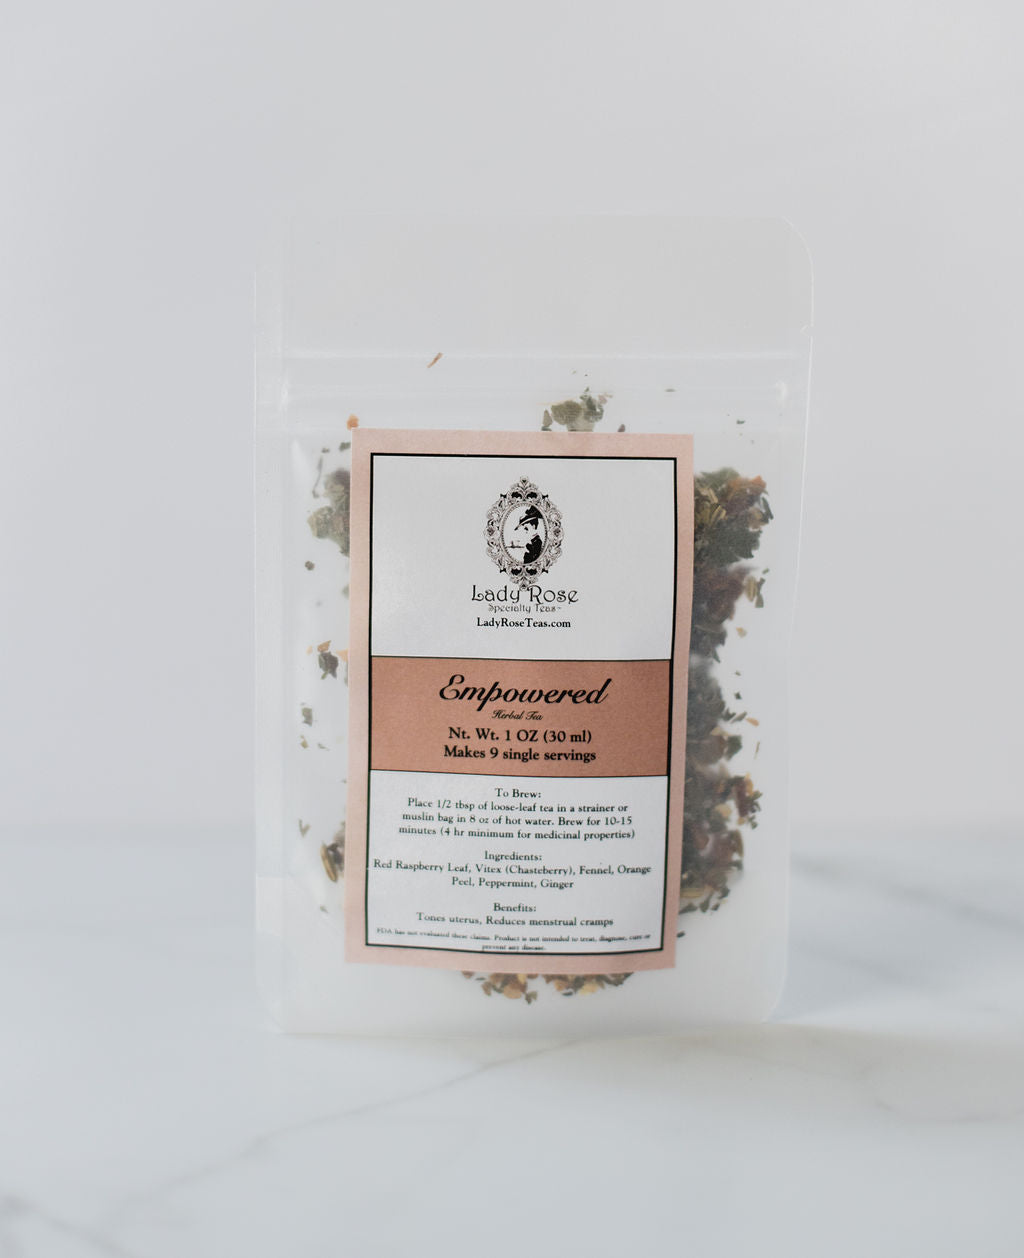 Empowered Herbal Tea (1 oz)